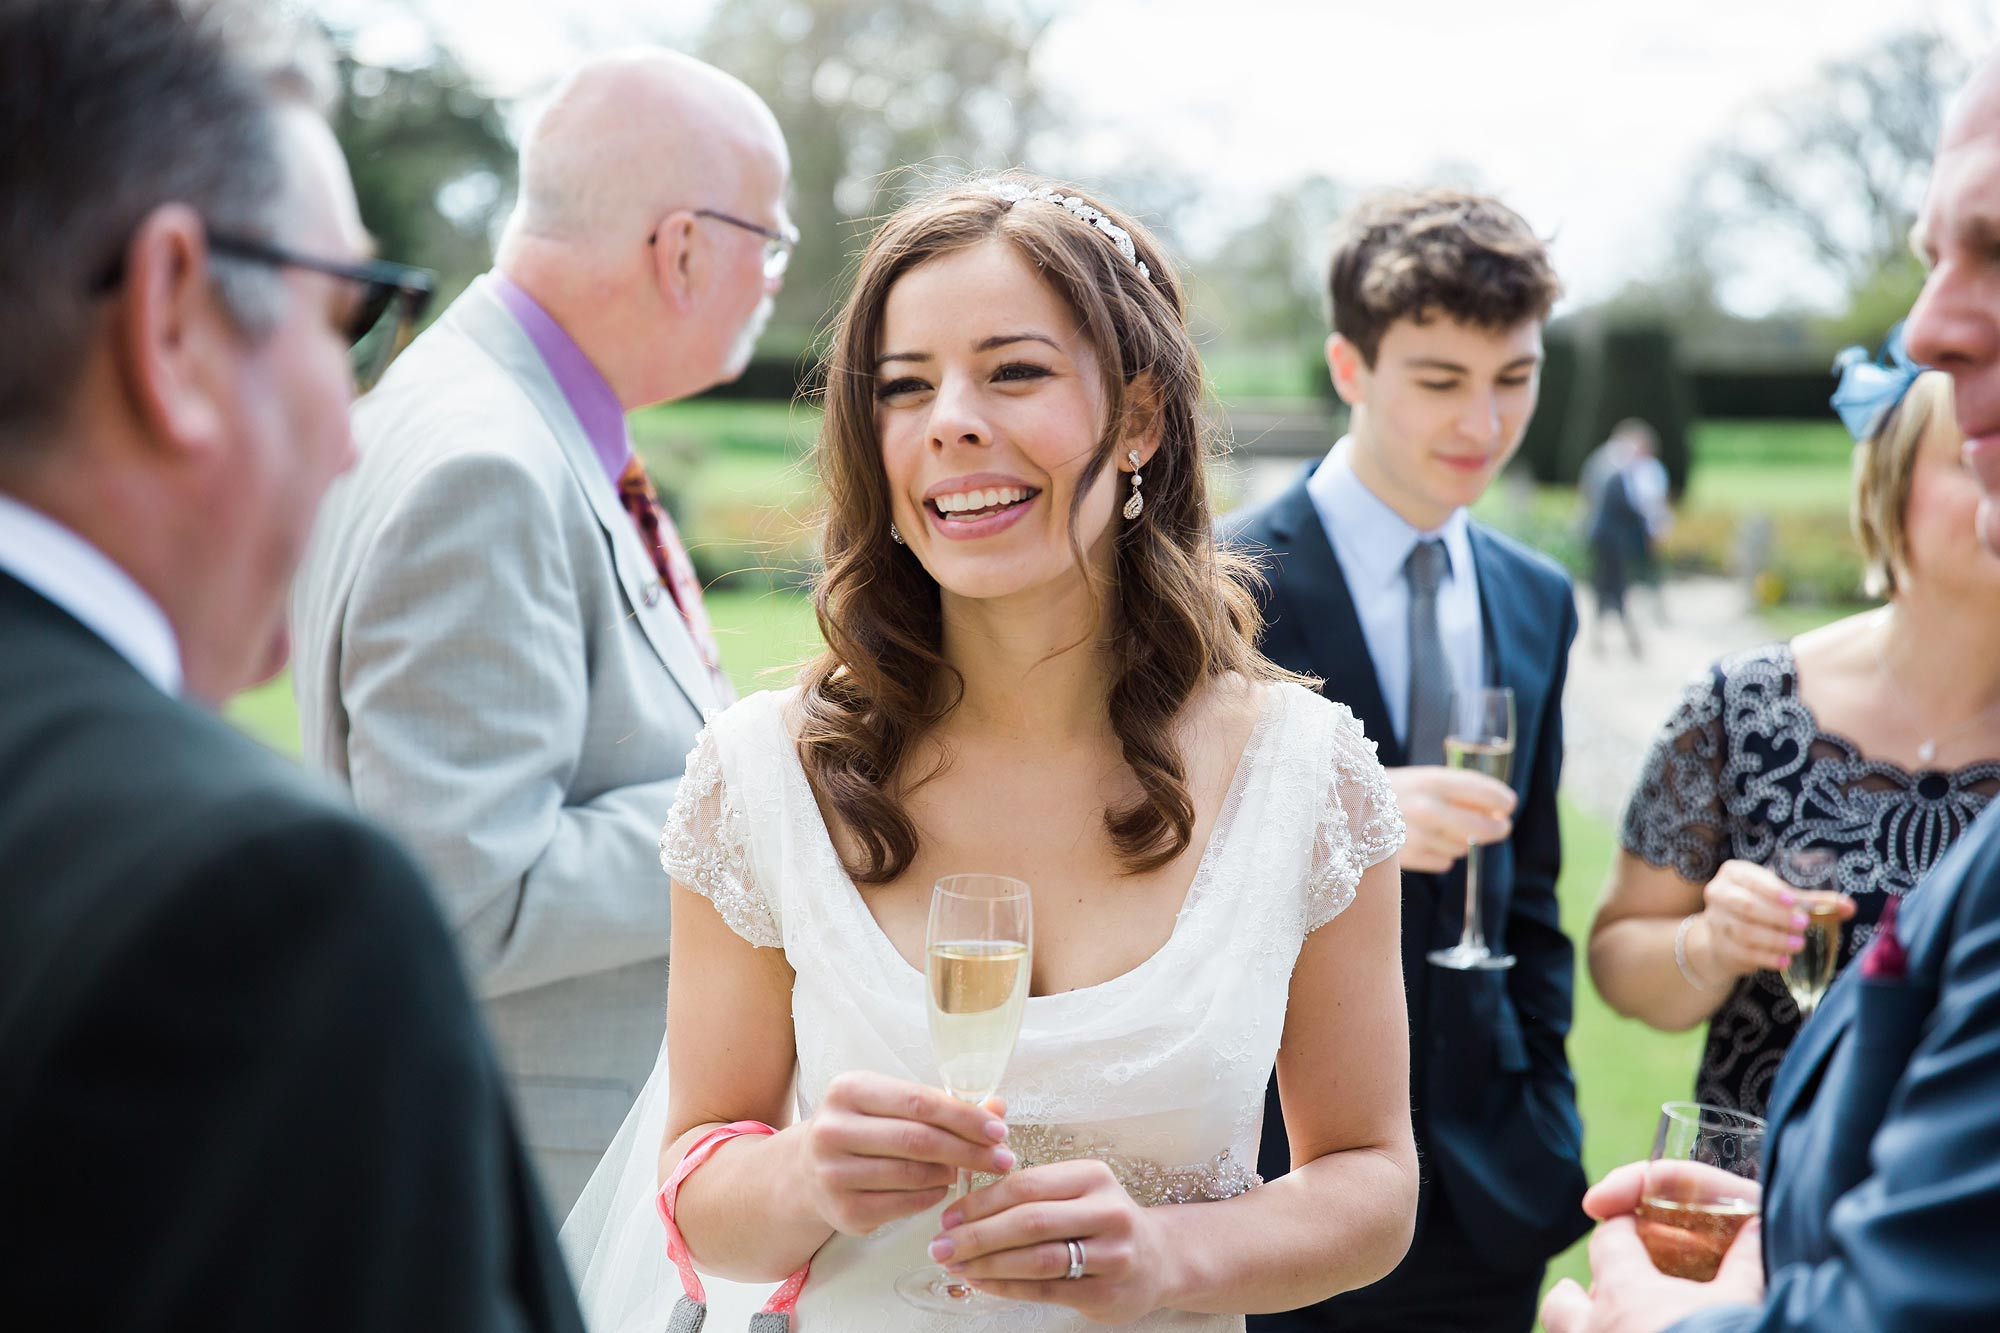 Amy the bride drinking champagne and laughing